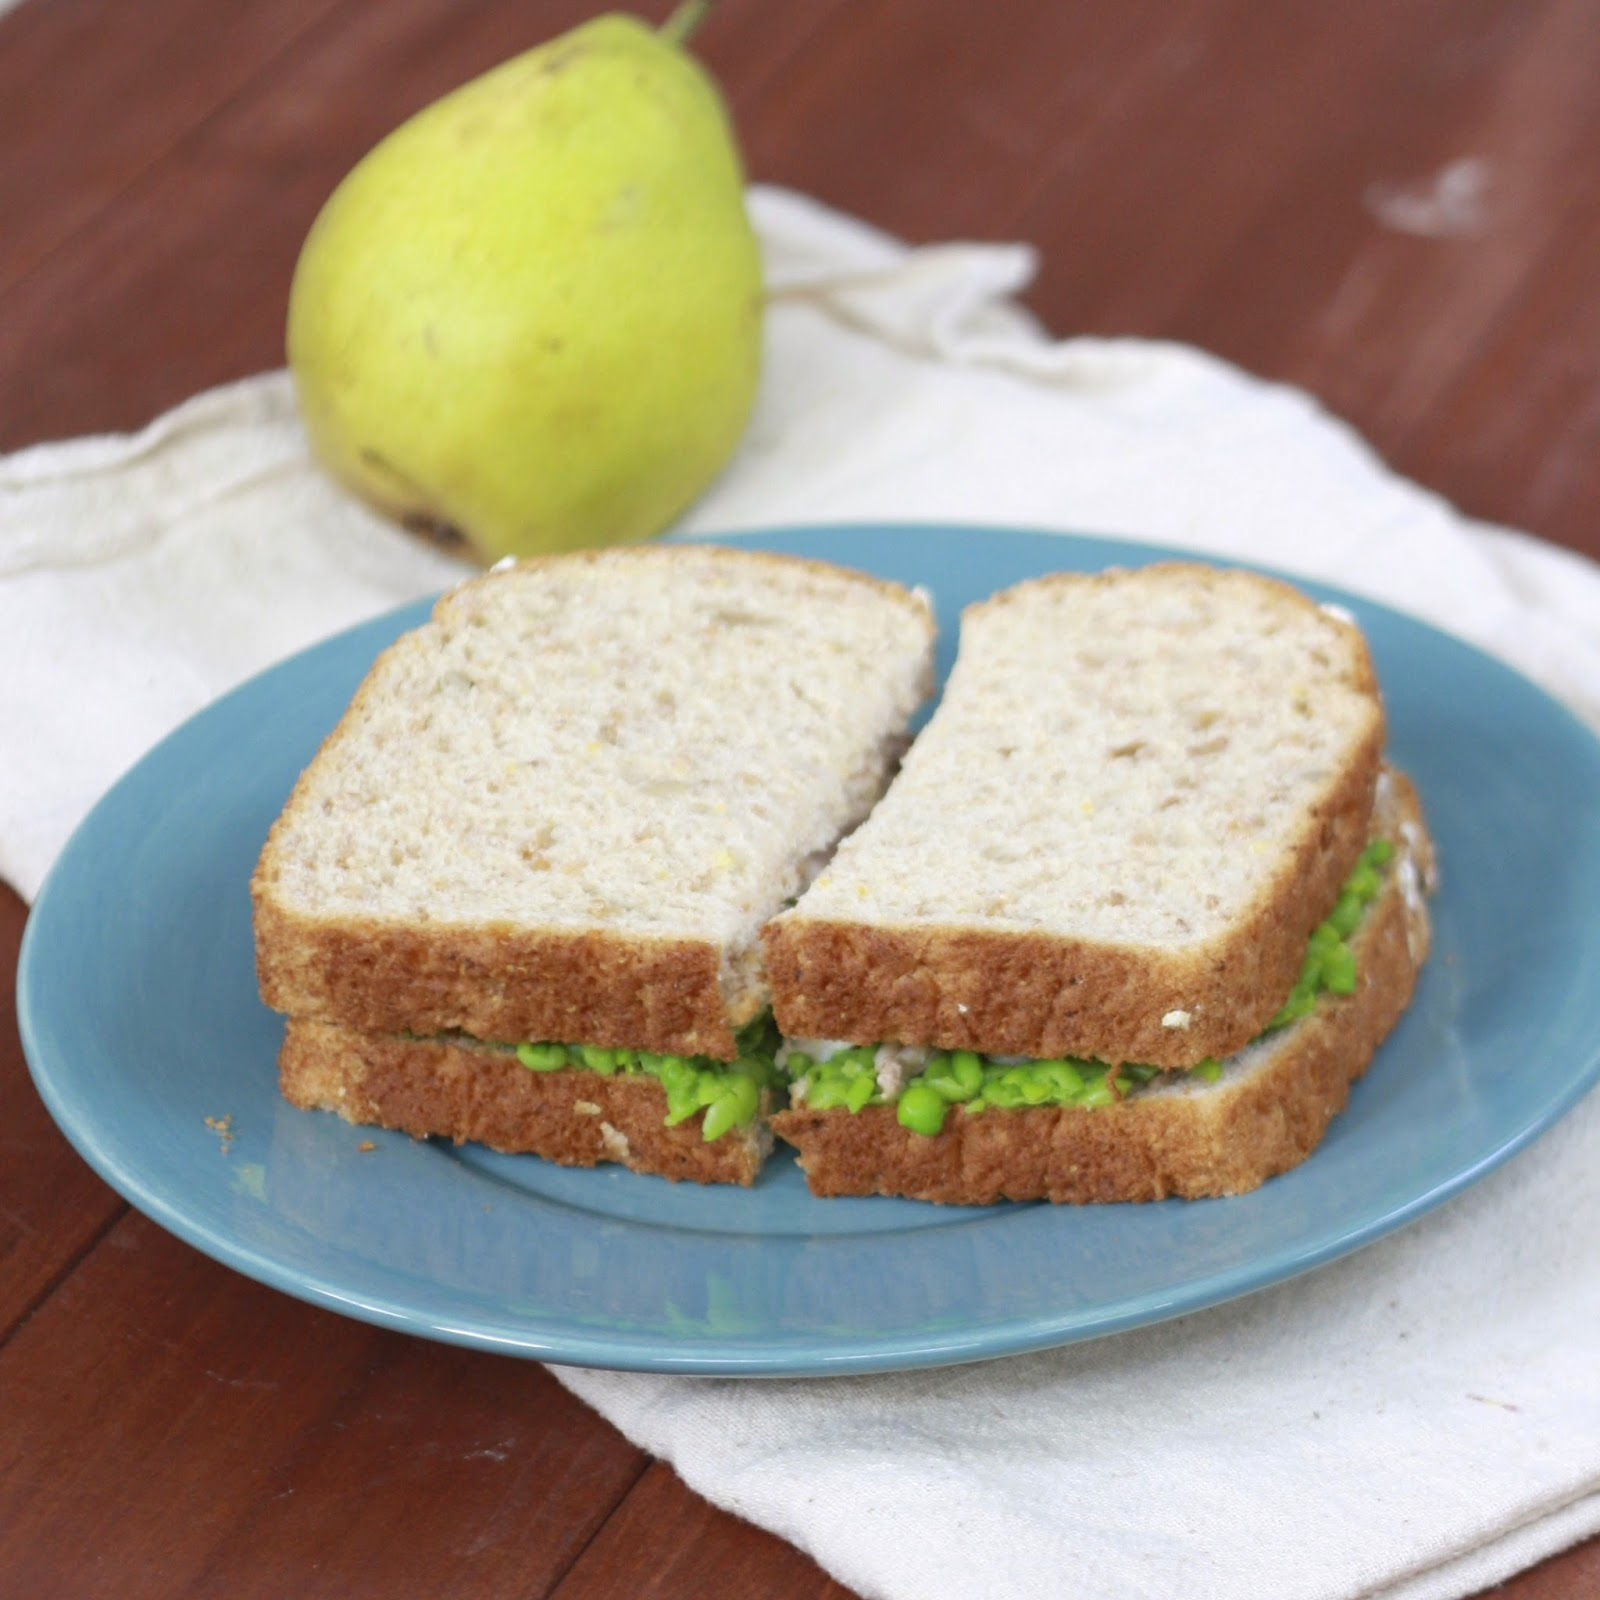 Turkey, Smashed Pea, and Pesto Sandwich | The Sweets Life